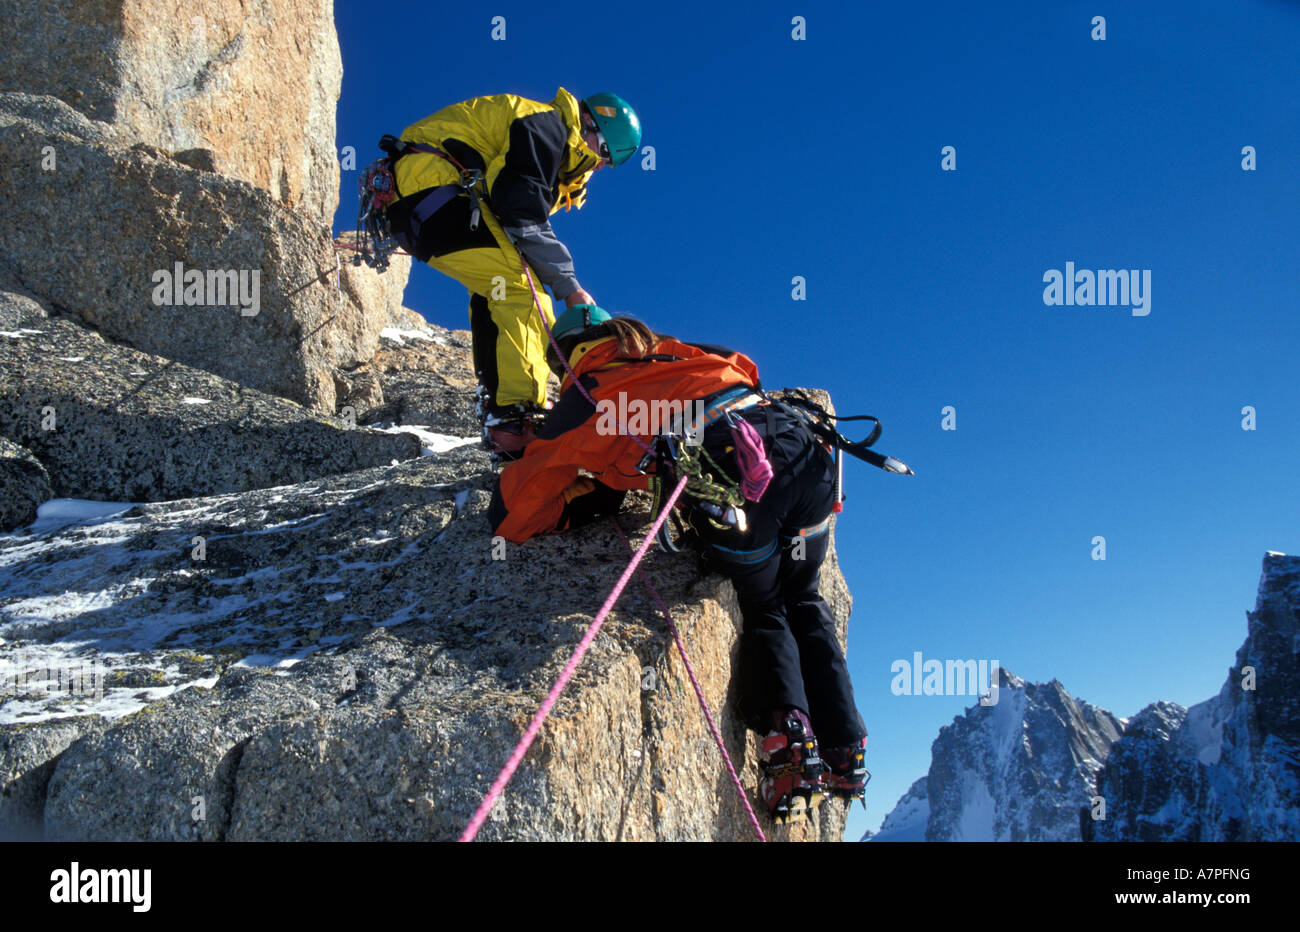 Richard Mansfield and Vaila Macdonald climbing high in the mountains near Chamonix French Alps - Stock Image